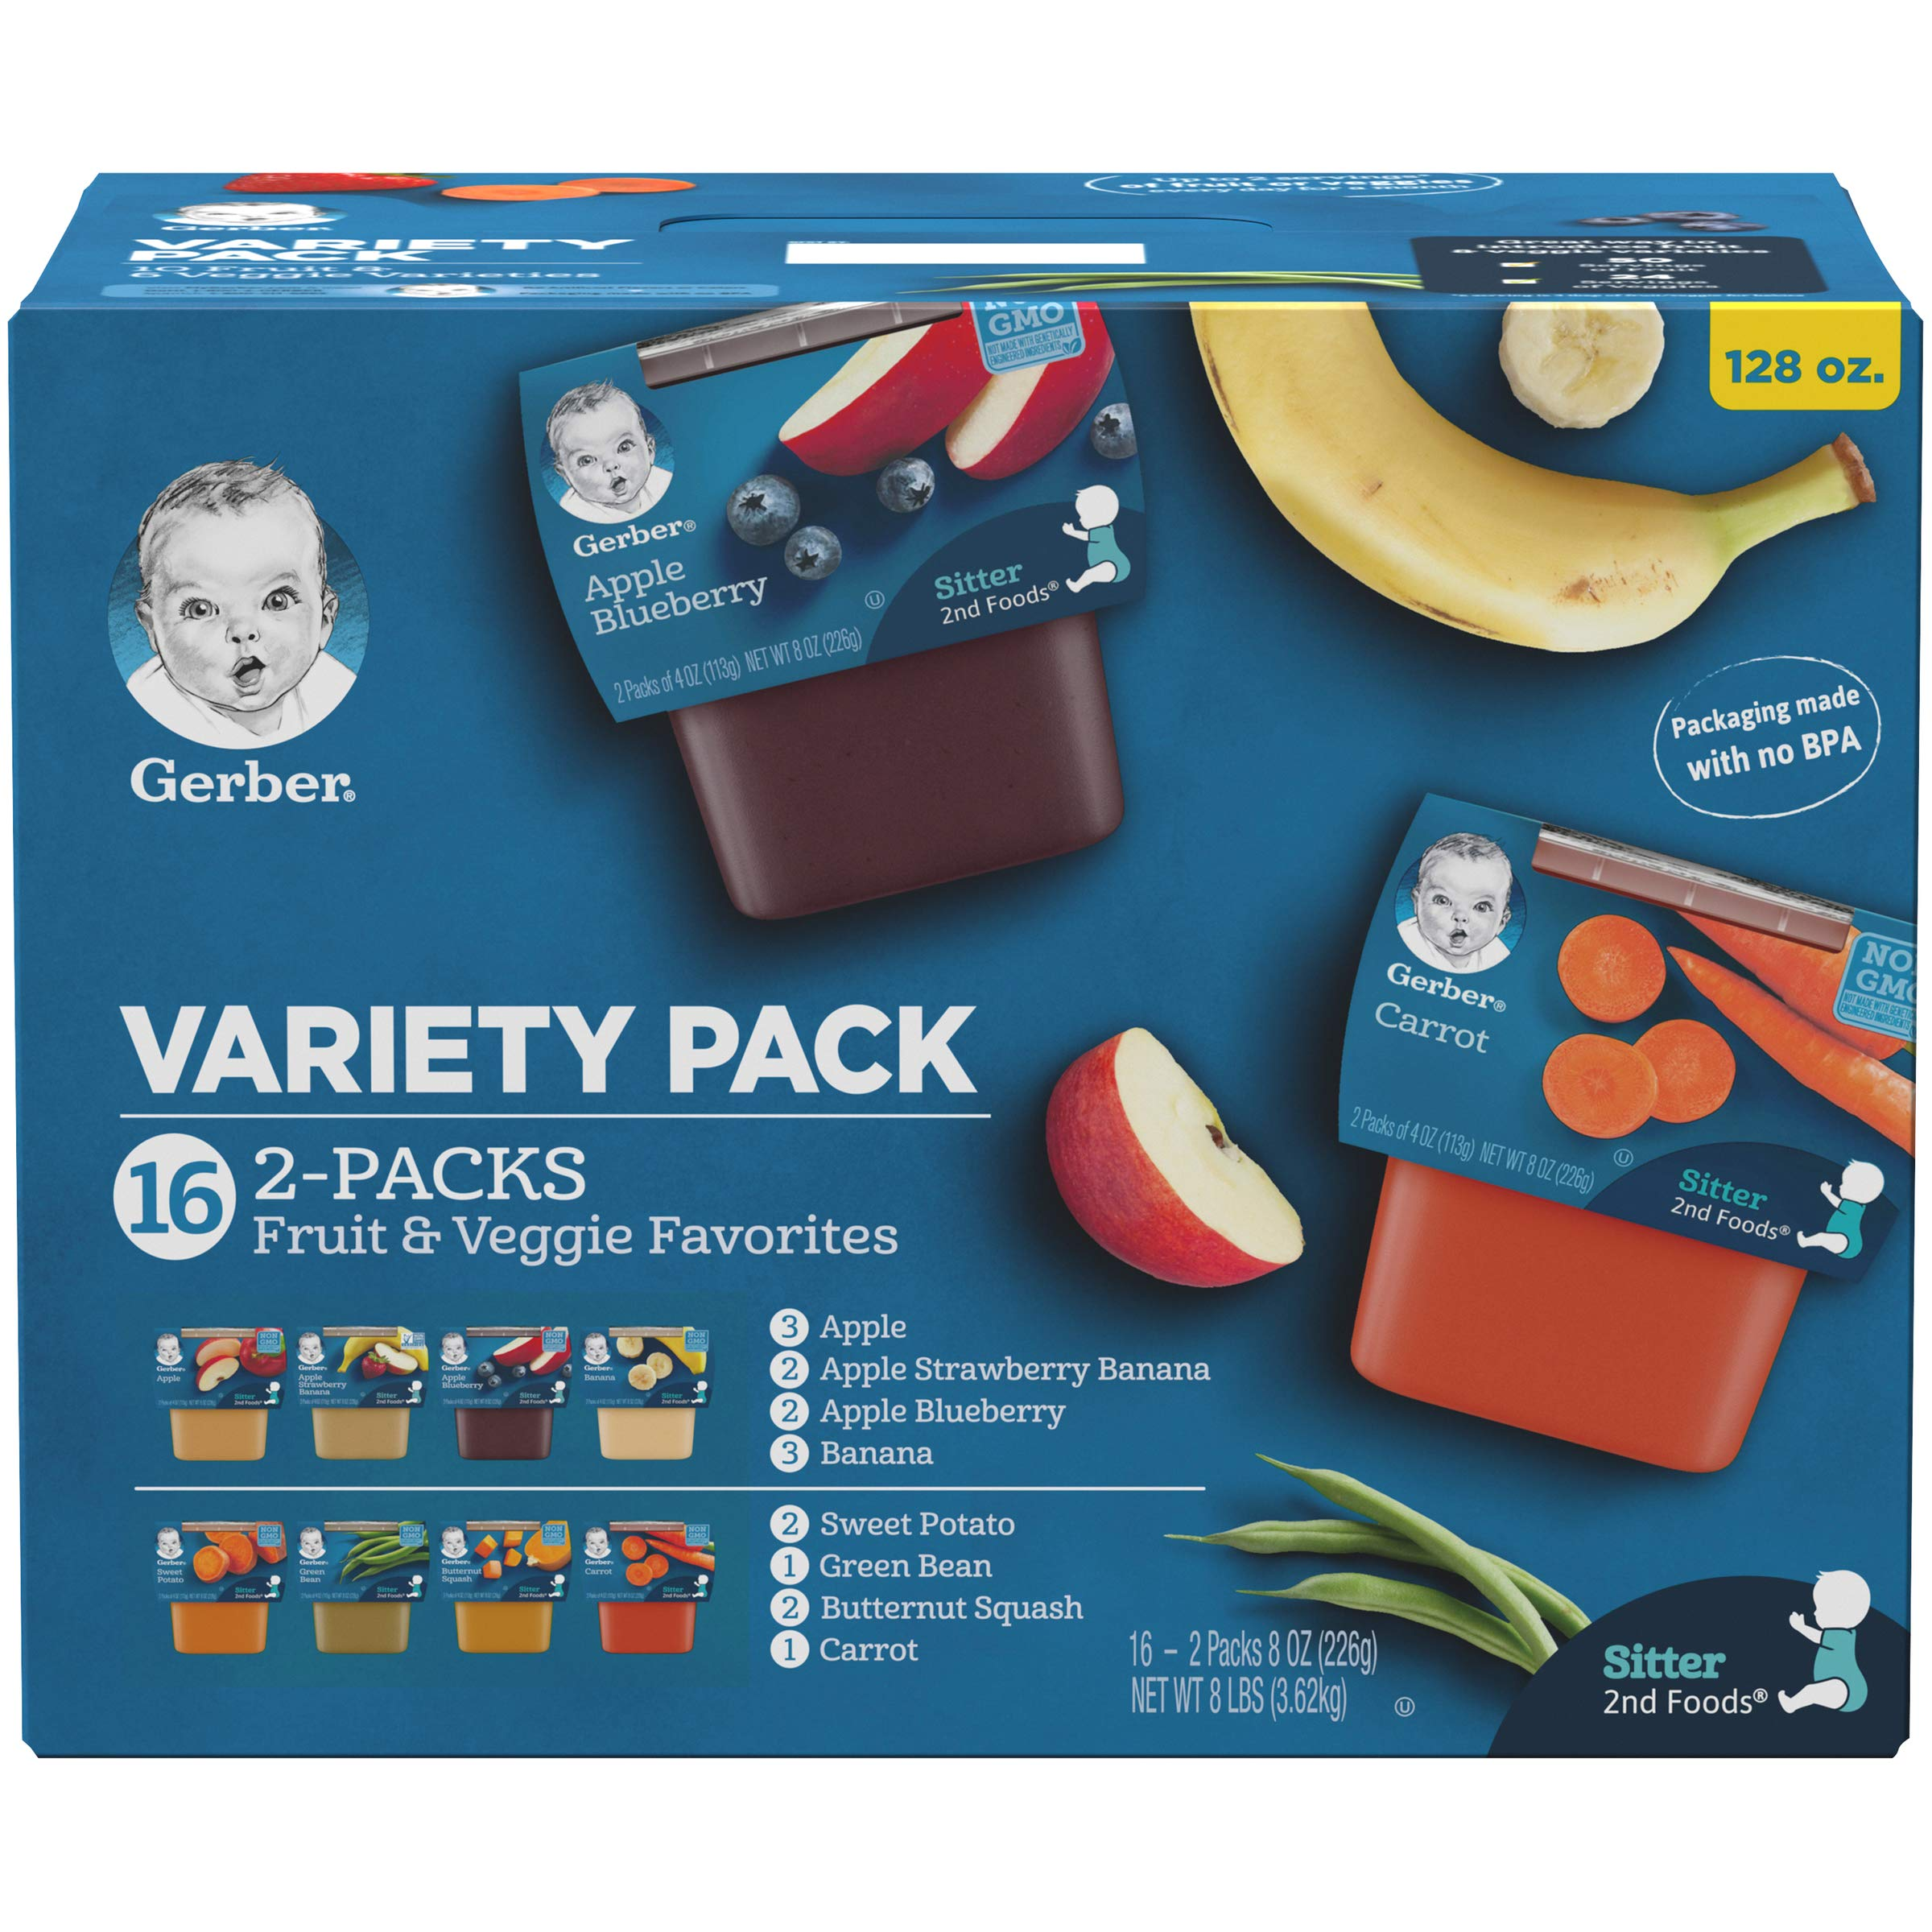 Gerber Purees 2nd Foods Veggie & Fruit Variety Pack, 8 Ounces, Box of 16 by Gerber Purees